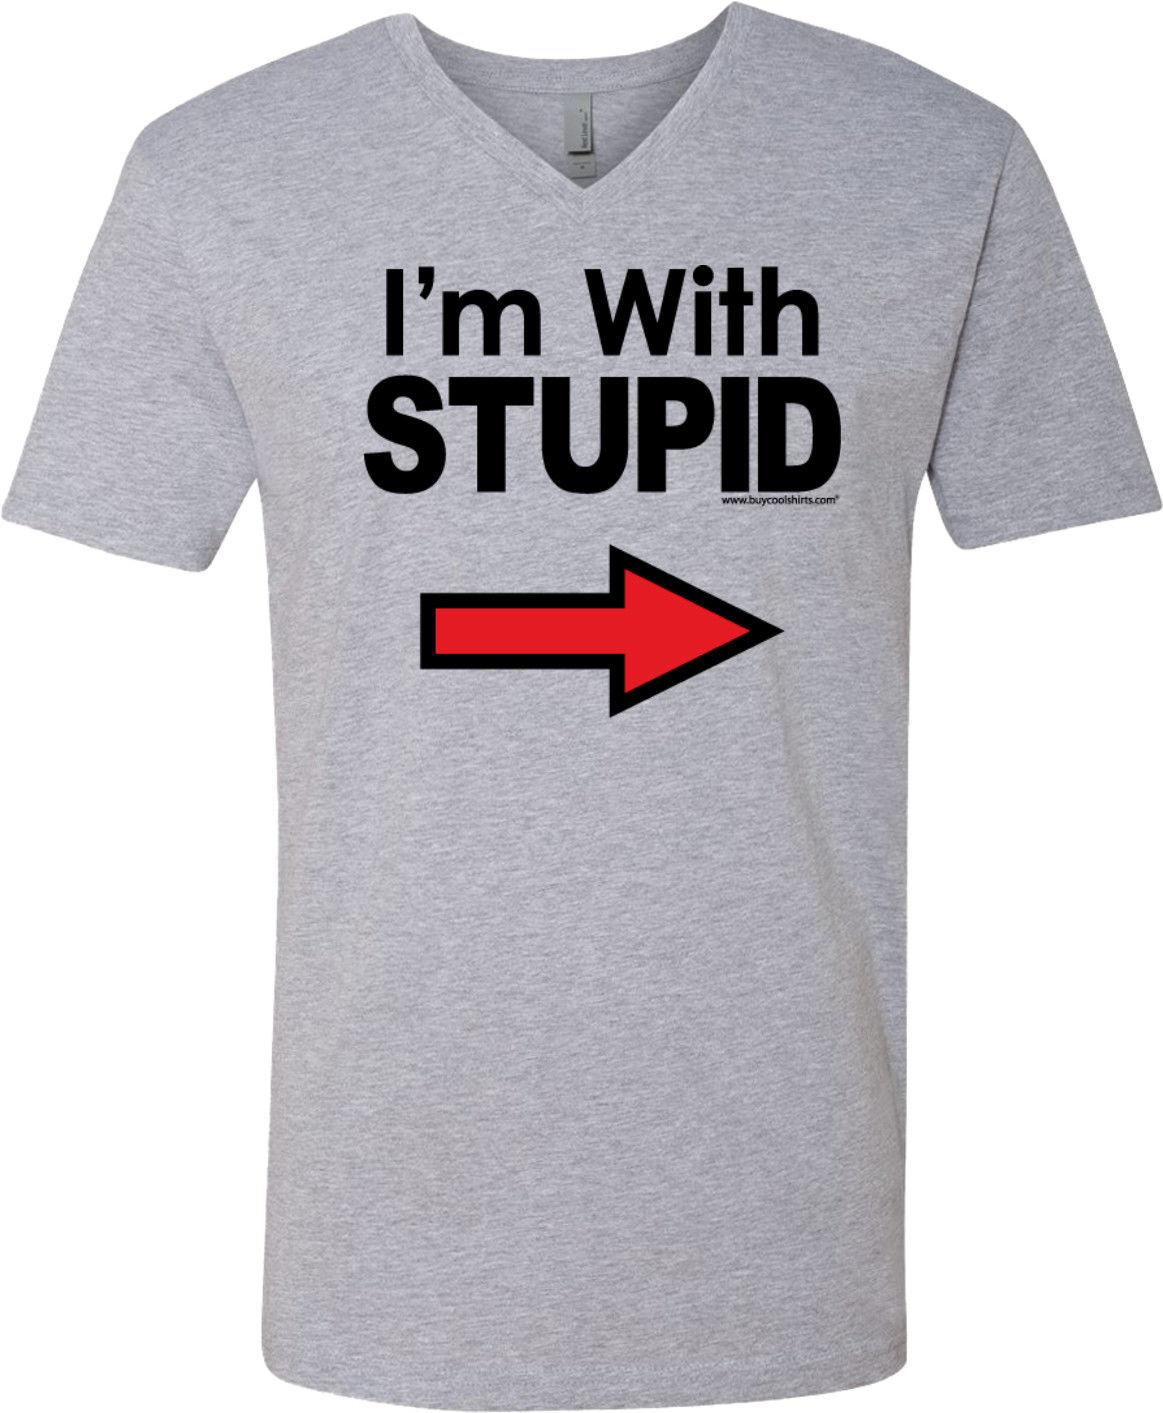 Stupid T Shirts >> Buy Cool Shirts I M With Stupid T Shirt Black Print V Neck Style Round Style Tshirt